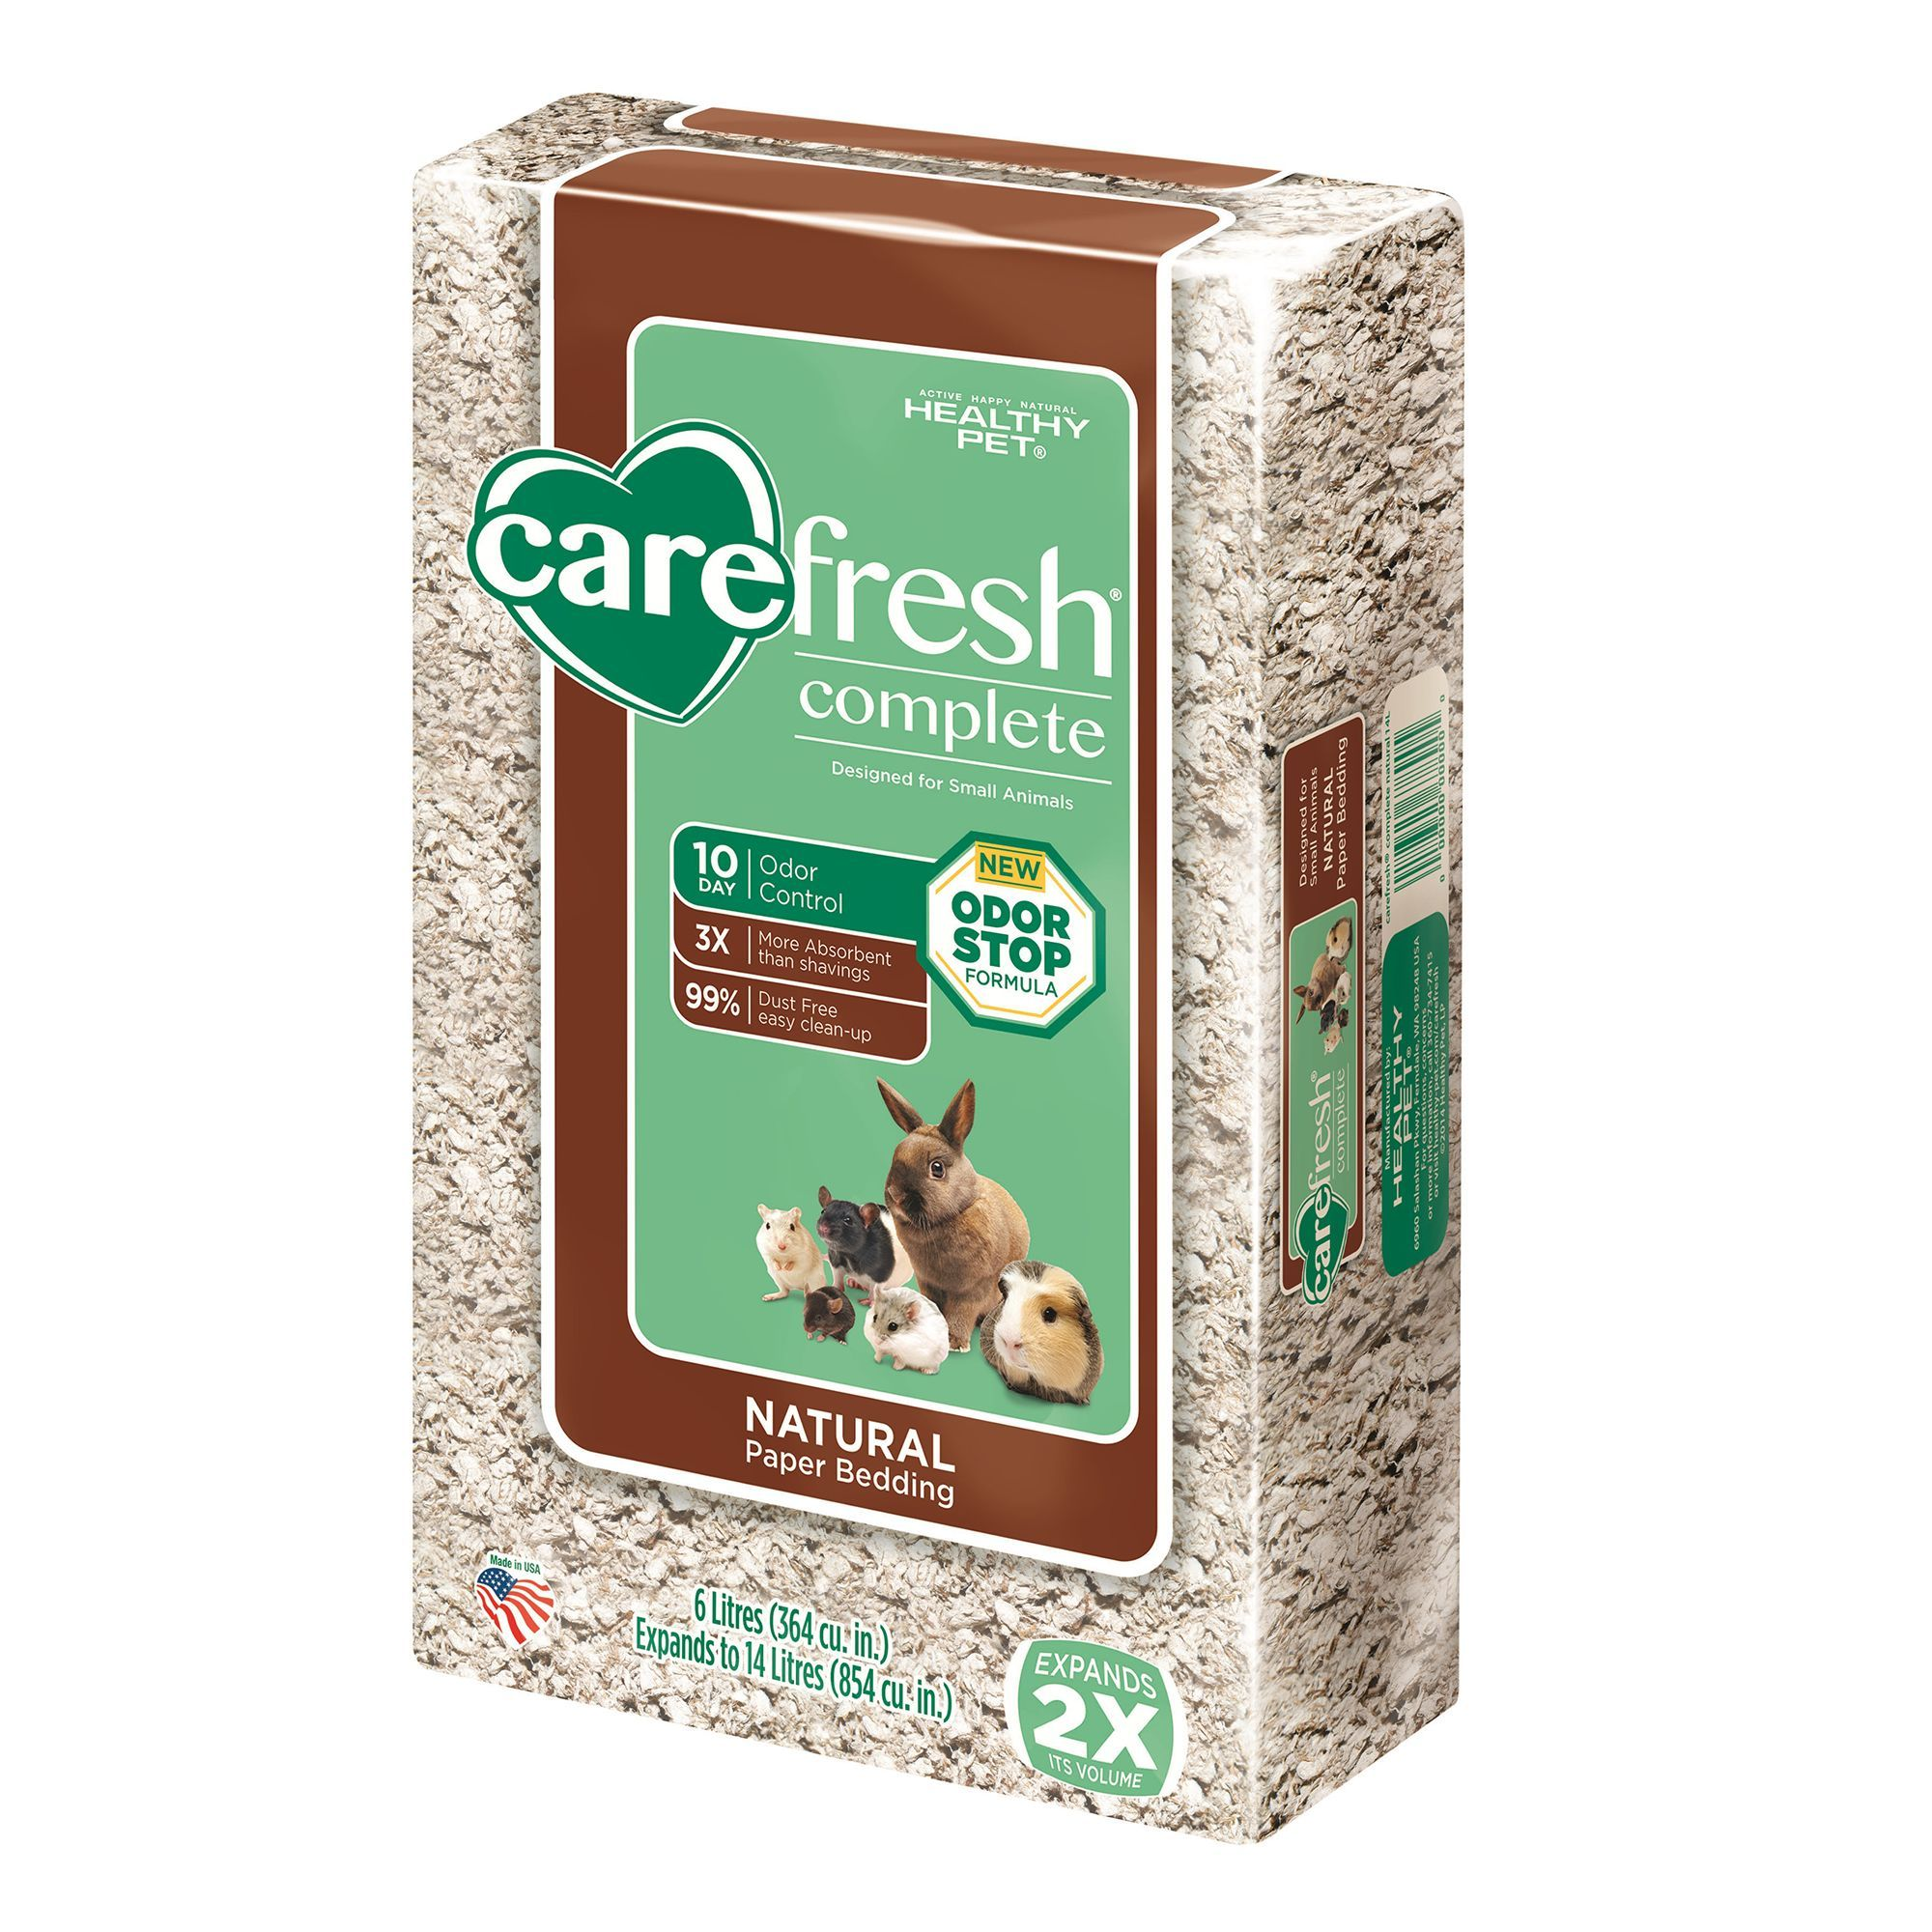 carefresh Natural Small Pet Bedding size 14 L, Tan